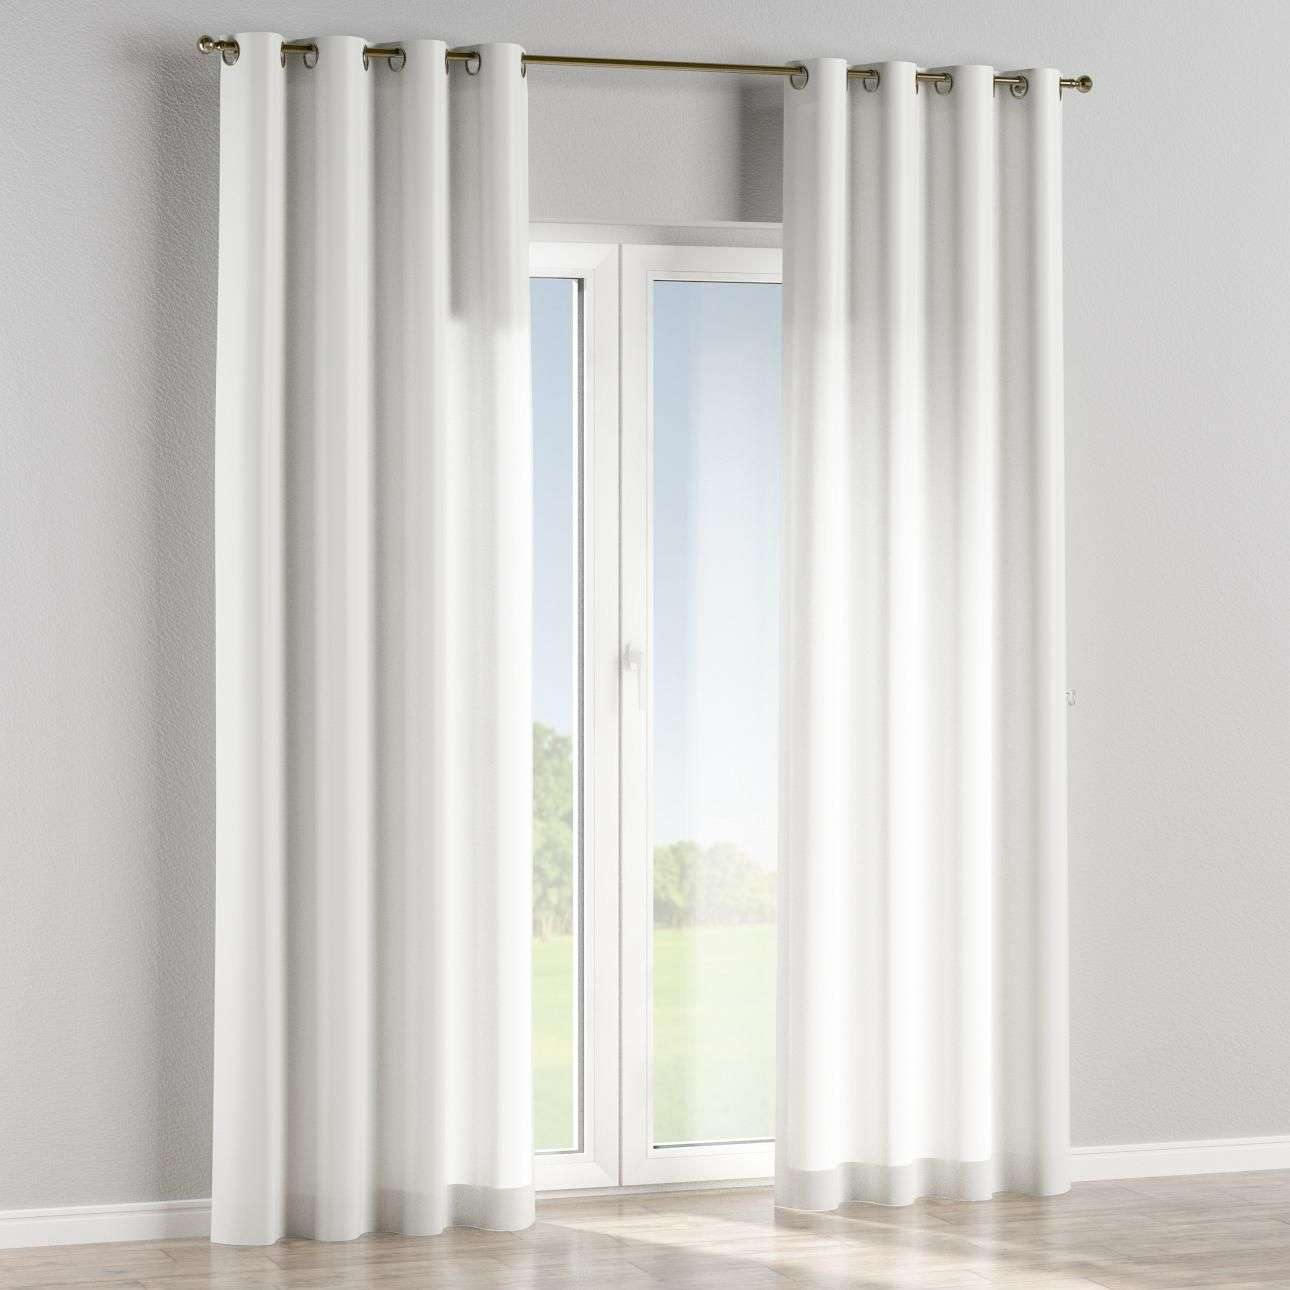 Eyelet curtains in collection Freestyle, fabric: 140-57